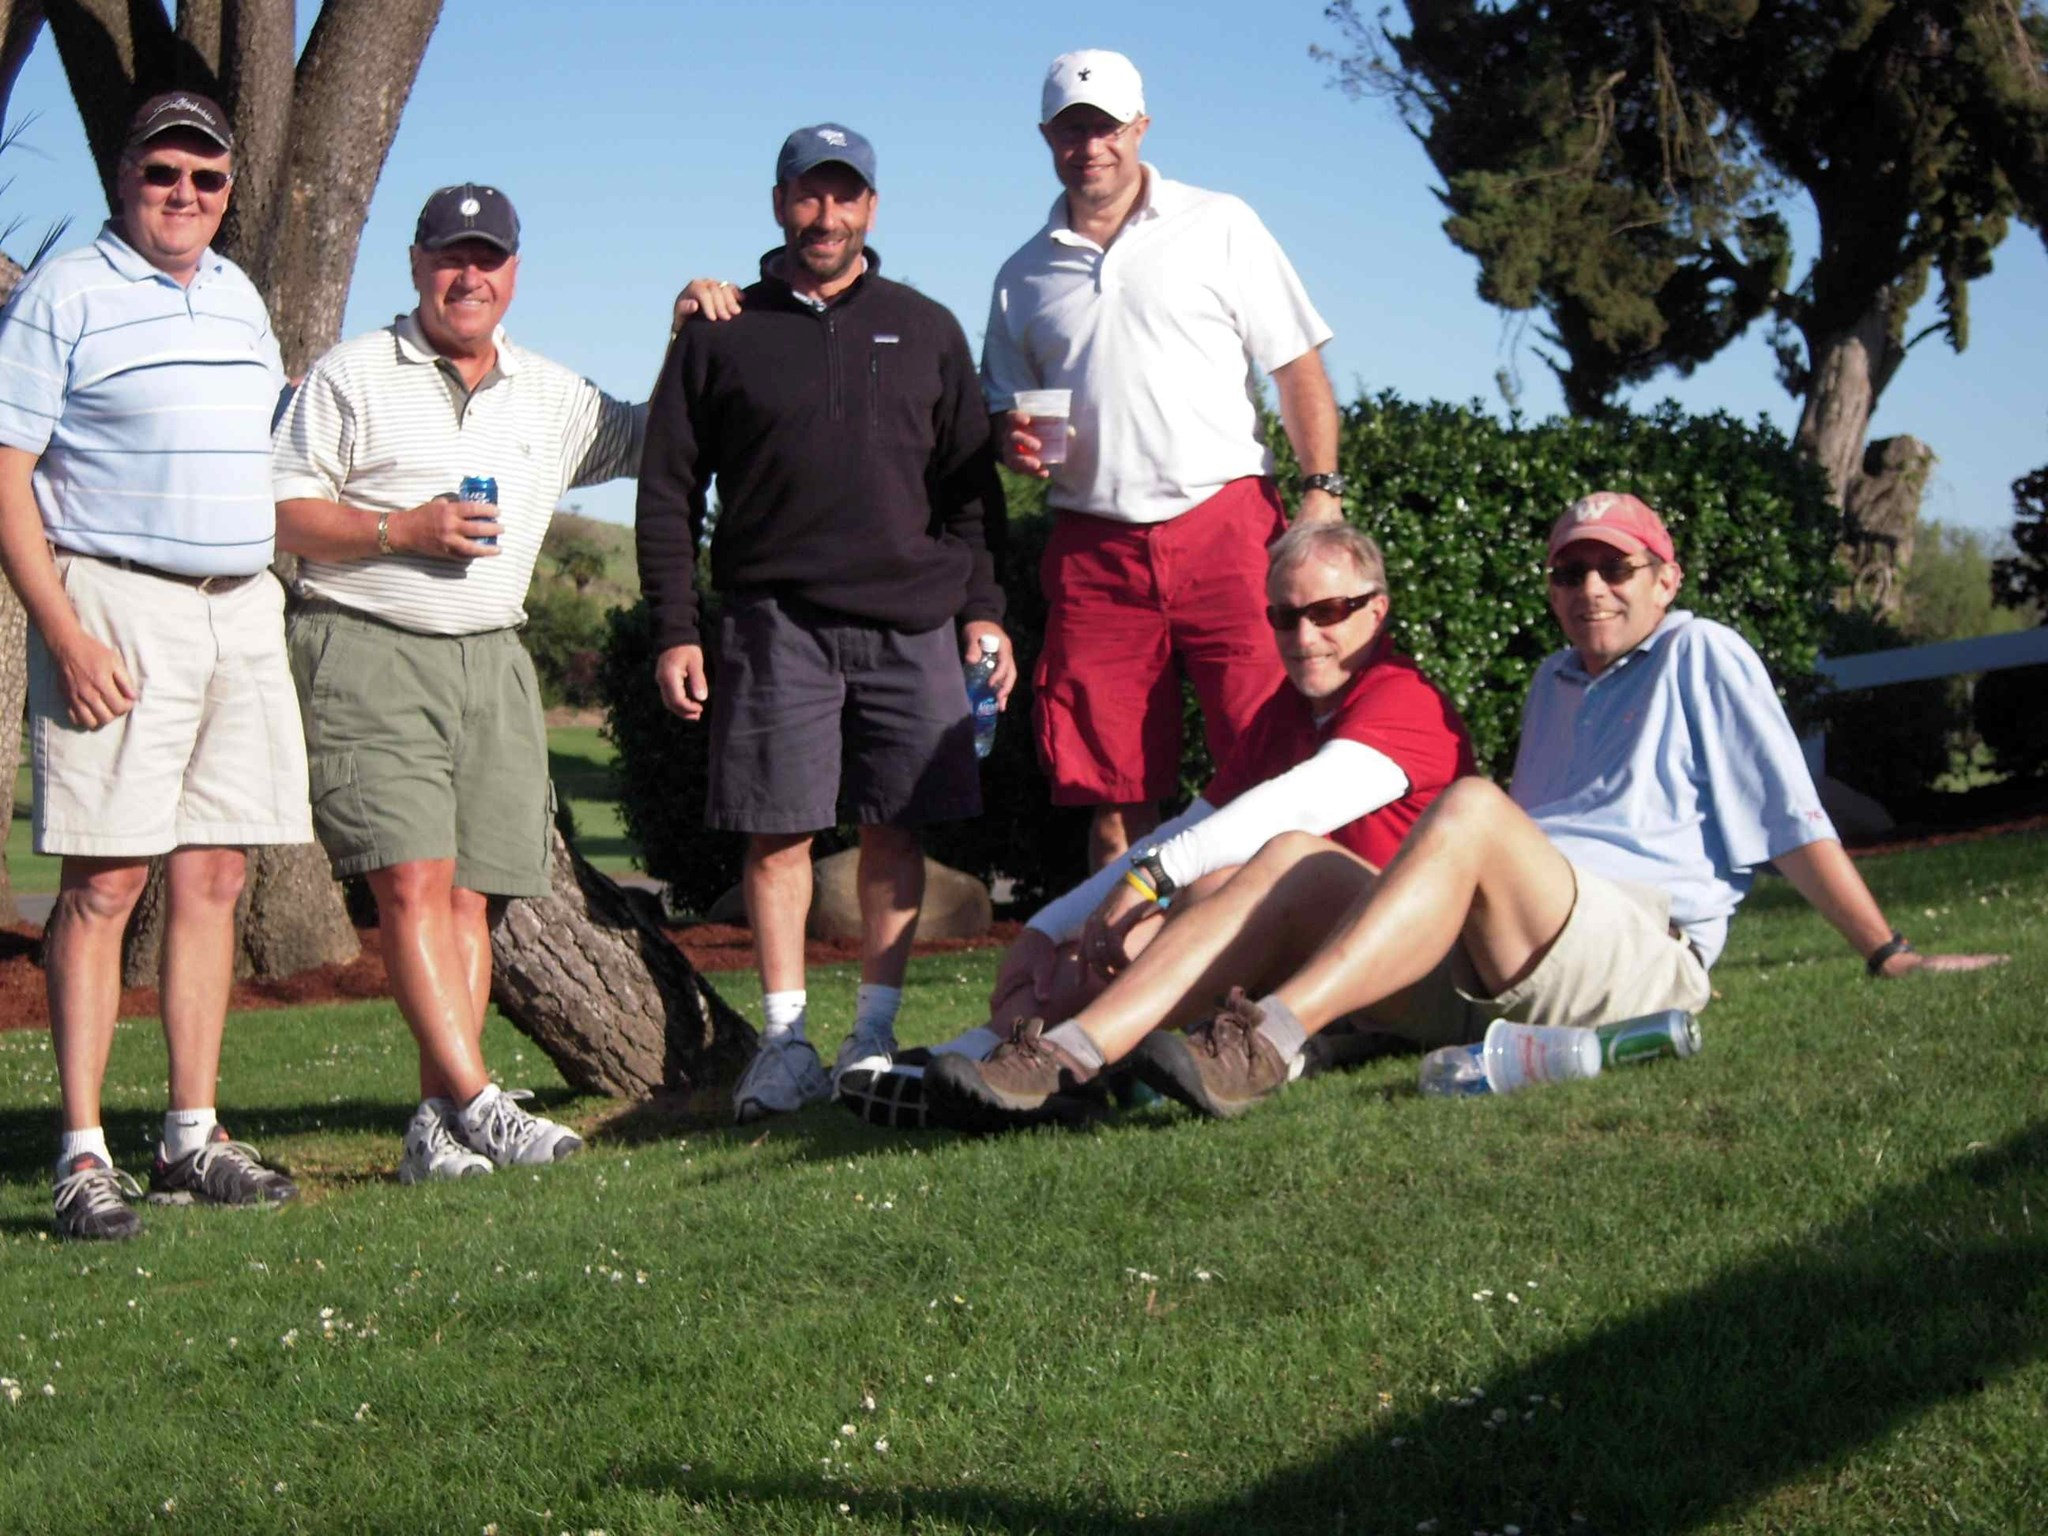 Group Photo after golf